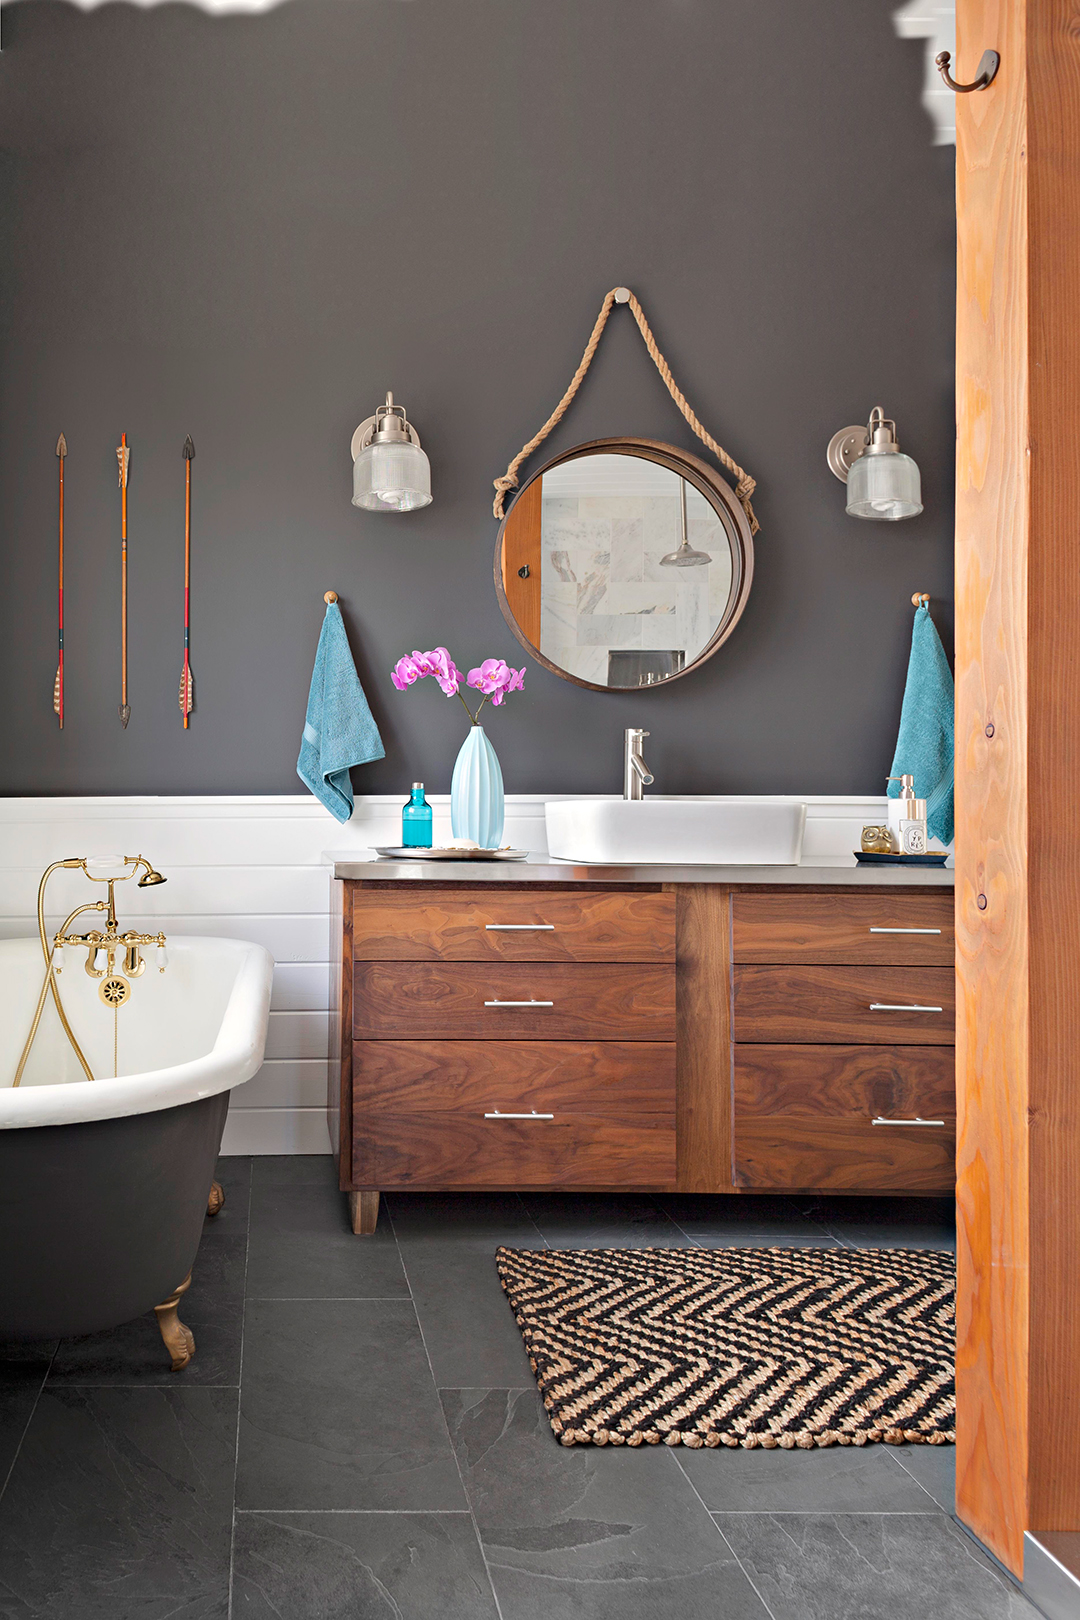 12 Popular Bathroom Paint Colors Our Editors Swear By ...